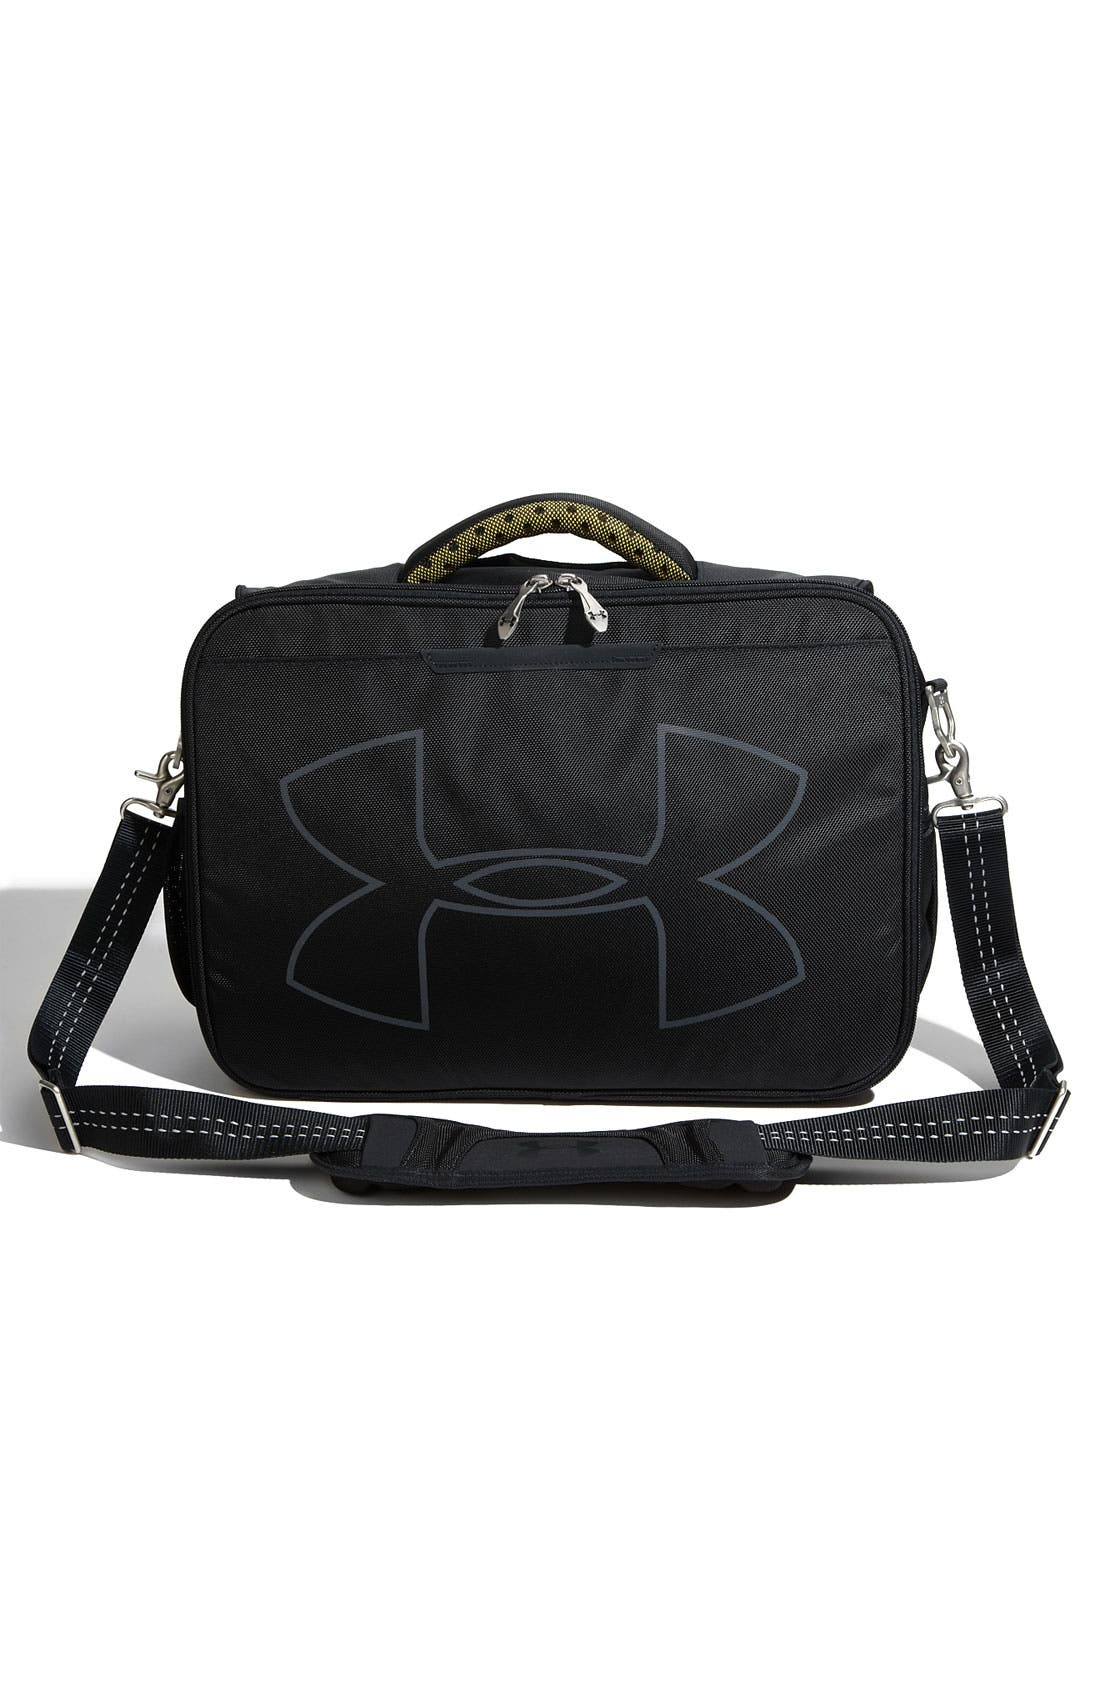 Main Image - Under Armour 'Victory' Briefcase